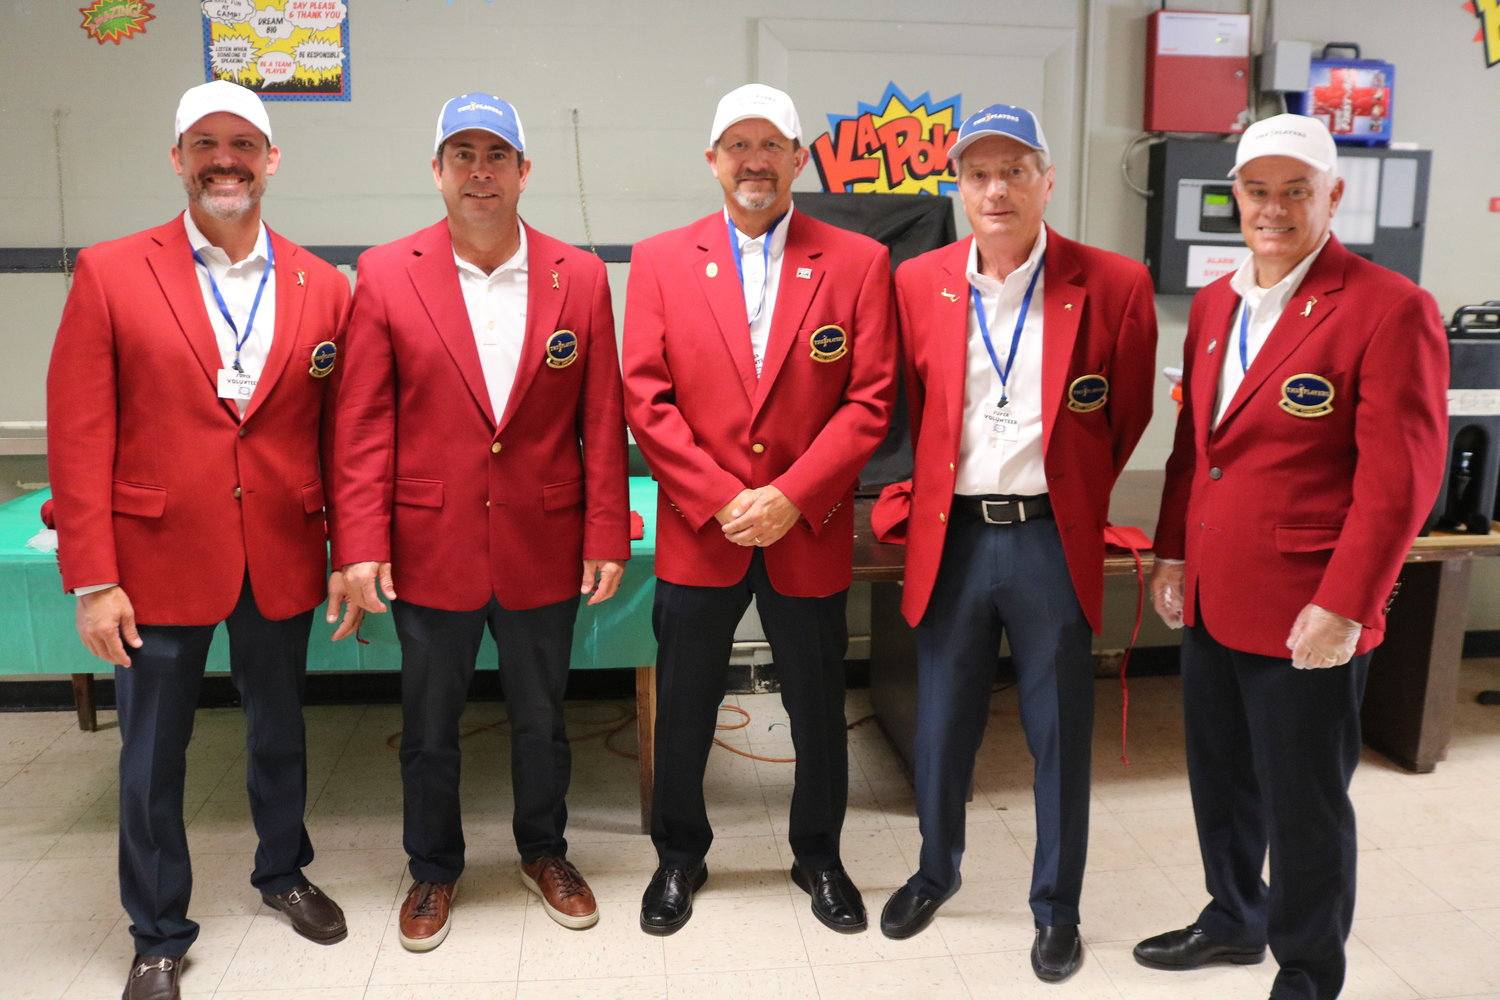 (Left to Right) The TPC Red Coats, (Adam Campbell, Kevin English, Jack Garnett, Lynn Stoner and Damon Olinto) serve some pizza and fun at Camp I Am Special on July 29.